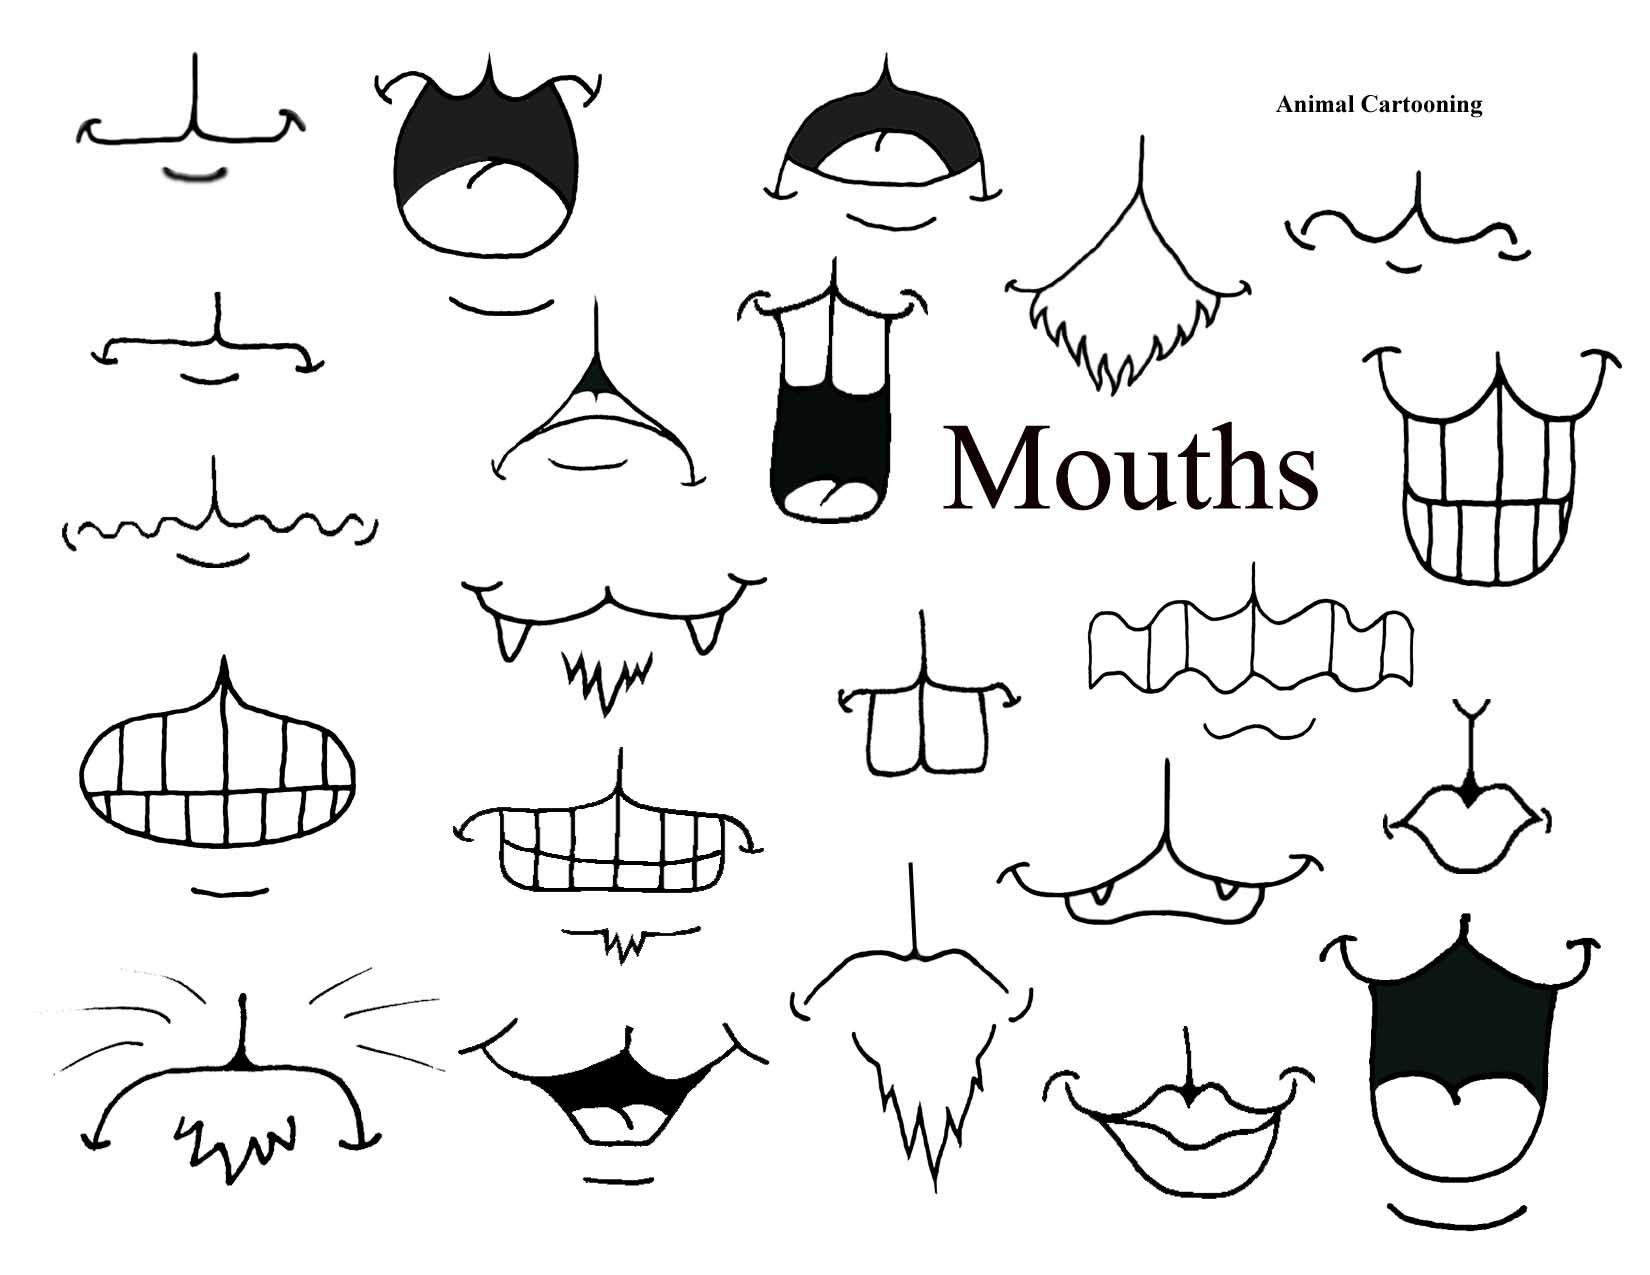 Animal Cartoons Mix And Match Mouths How To Draw Kidscartoon Facesfunny